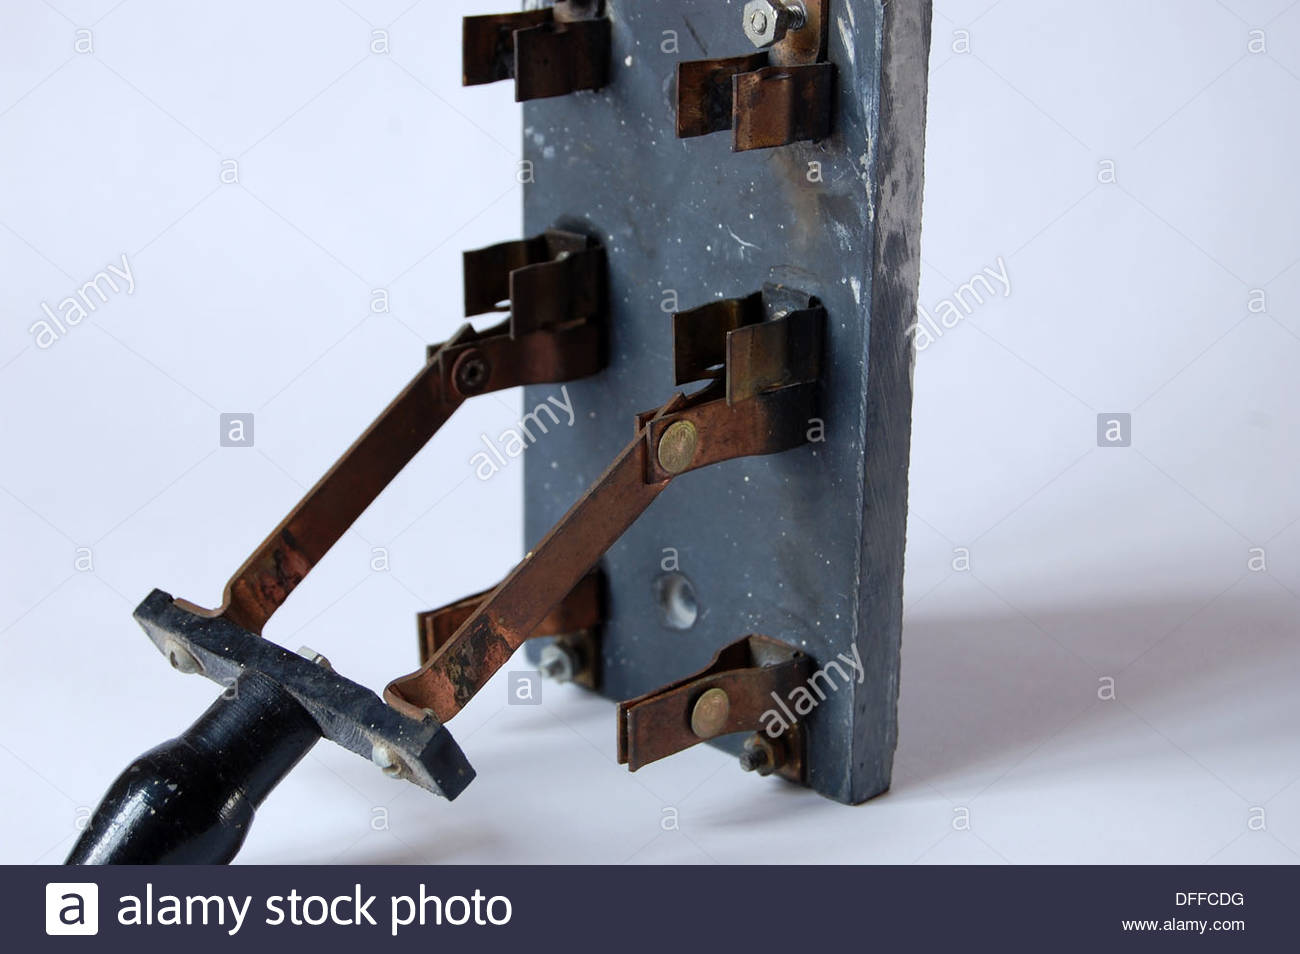 Famous How To Wire A Pit Bike Engine Thick Reznor Wiring Diagram Clean Bulldog Security Remote Starter With Keyless Entry 3 Humbucker Strat Young Bulldog Security Alarm BlackDimarzio Ep1111 Closeup Antique Old Electrical Fuse Box Breaker Switch Brass Stock ..